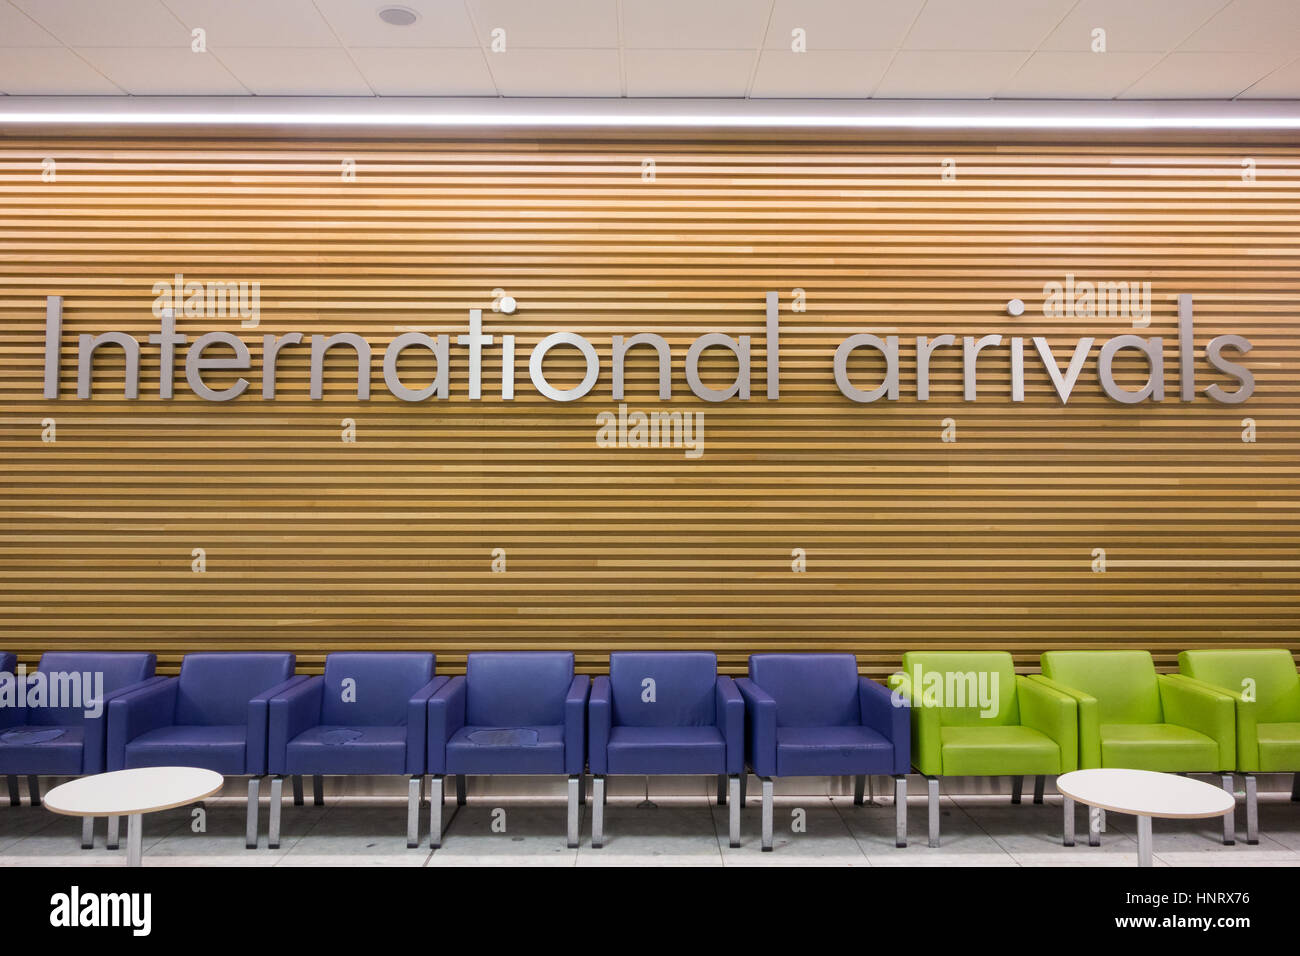 International Arrivals sign above row of empty chairs - Stock Image